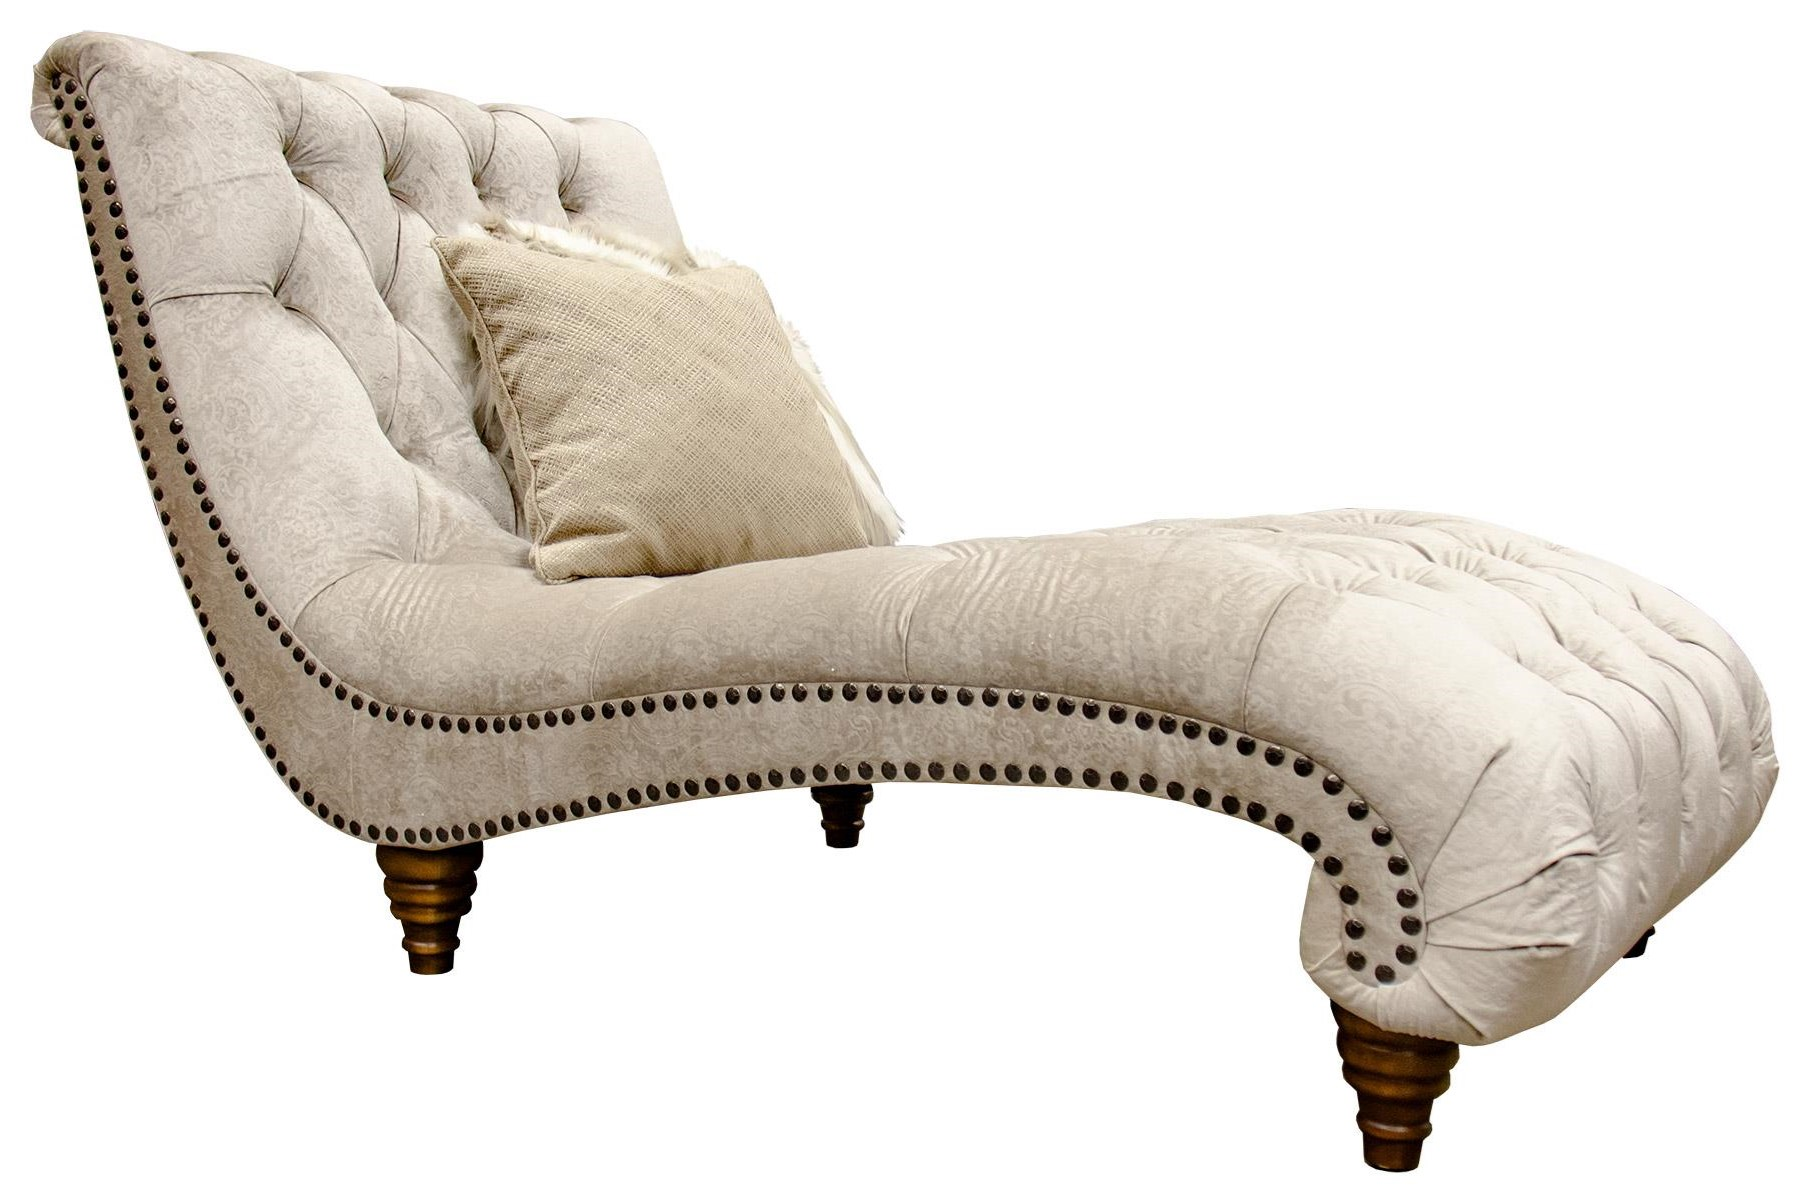 Verona Tufted Chaise